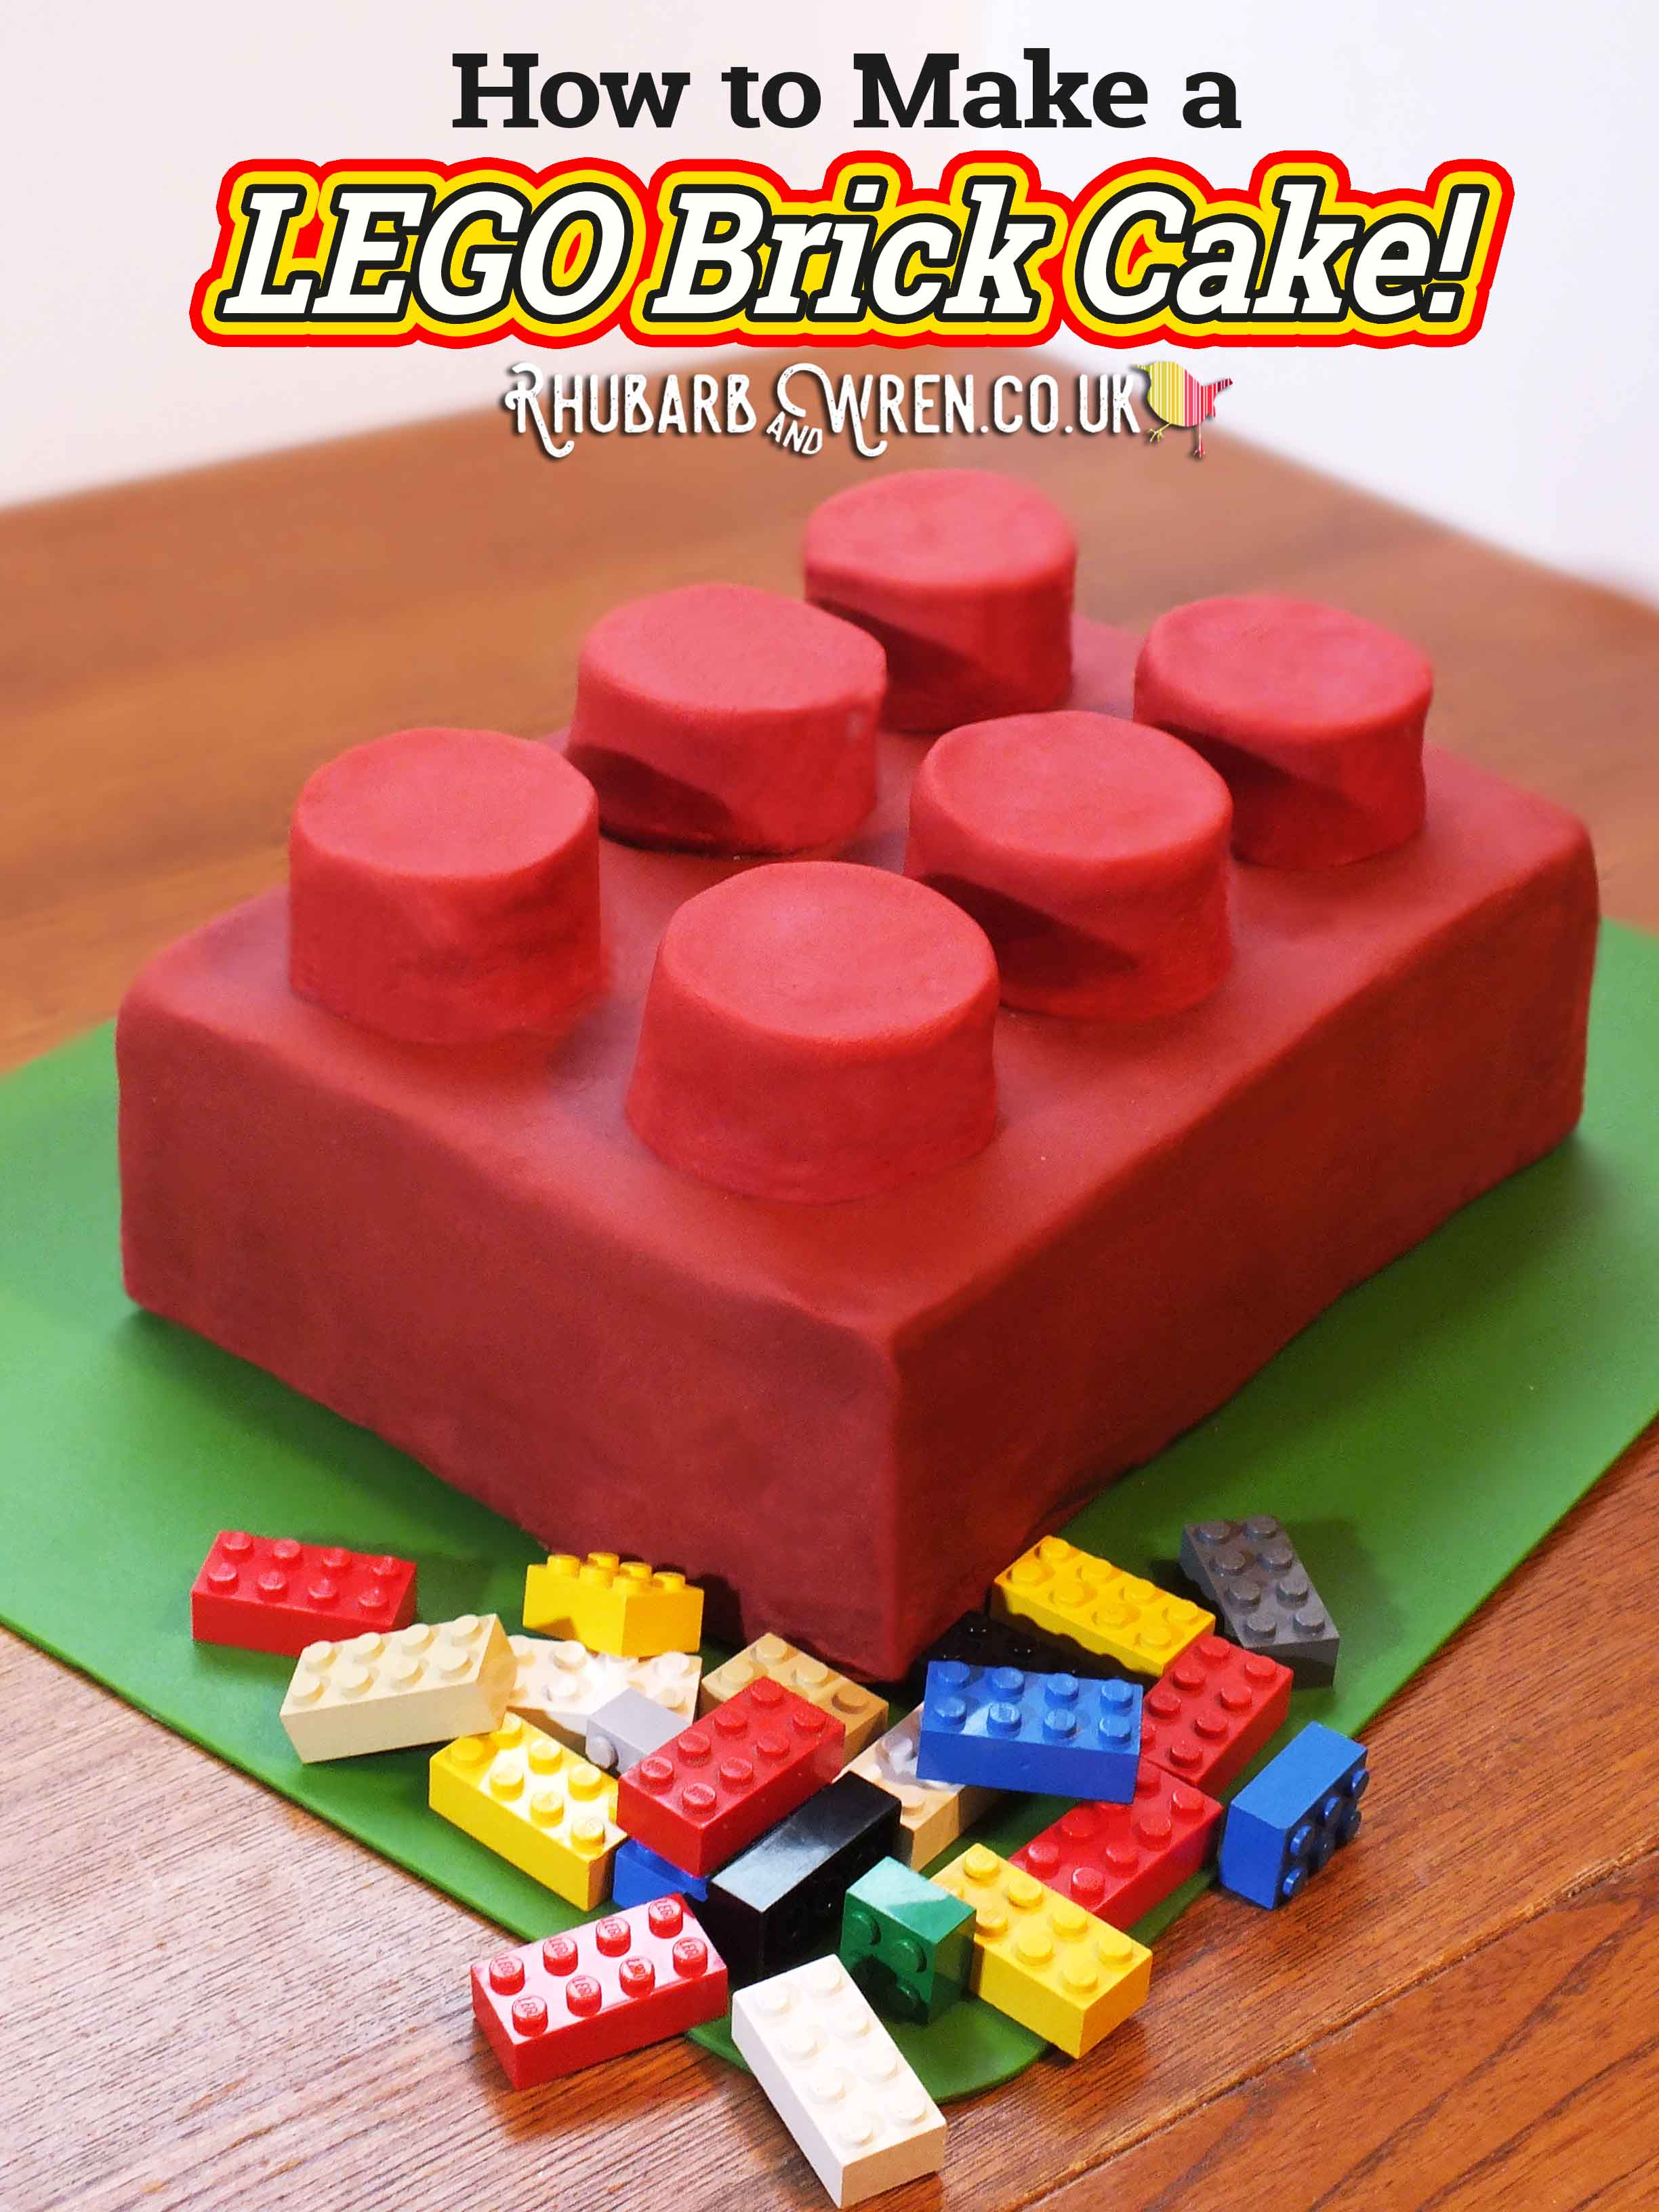 How to make a giant Lego brick cake